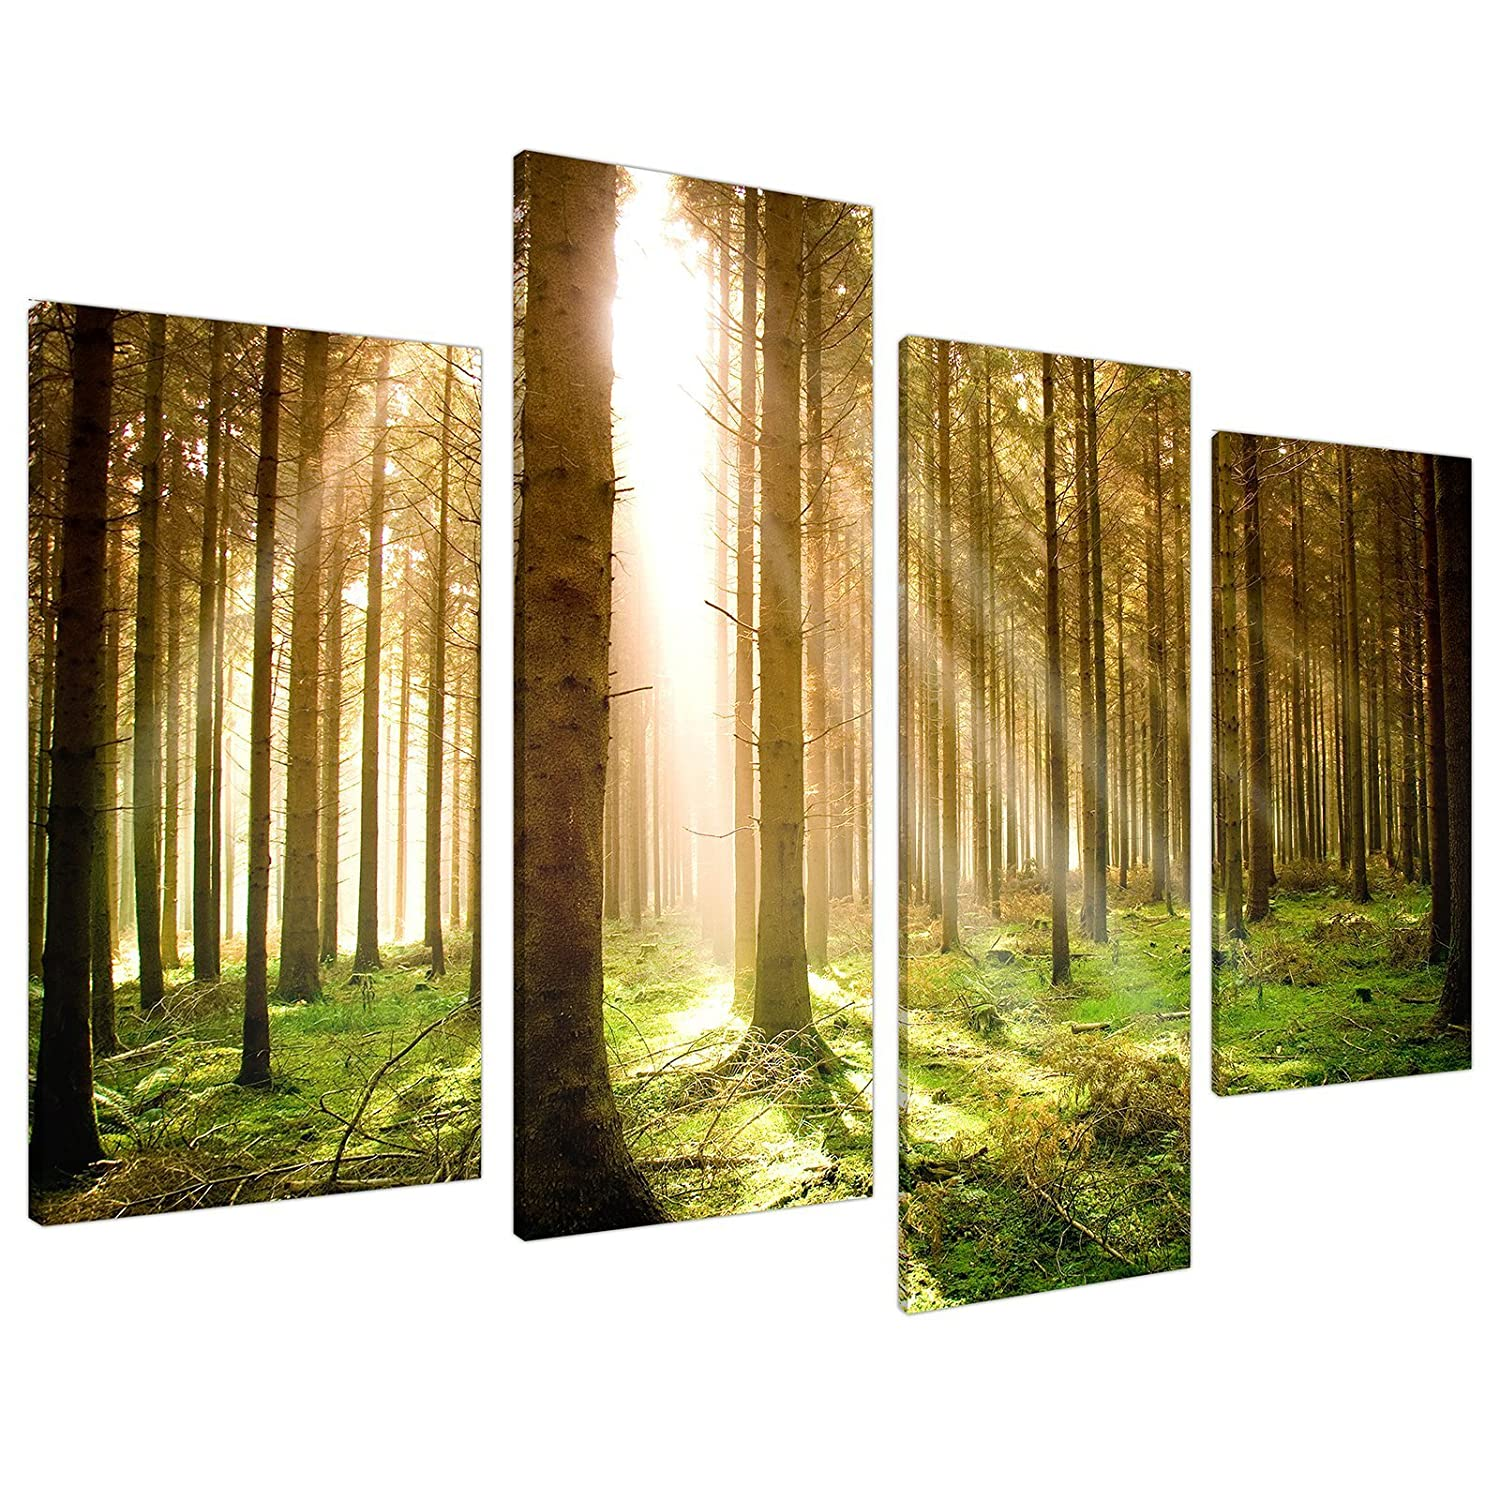 100+ [ Ikea Canvas Wall Art ] | Bj禧rnamo Picture Set Of 3 Animals ...